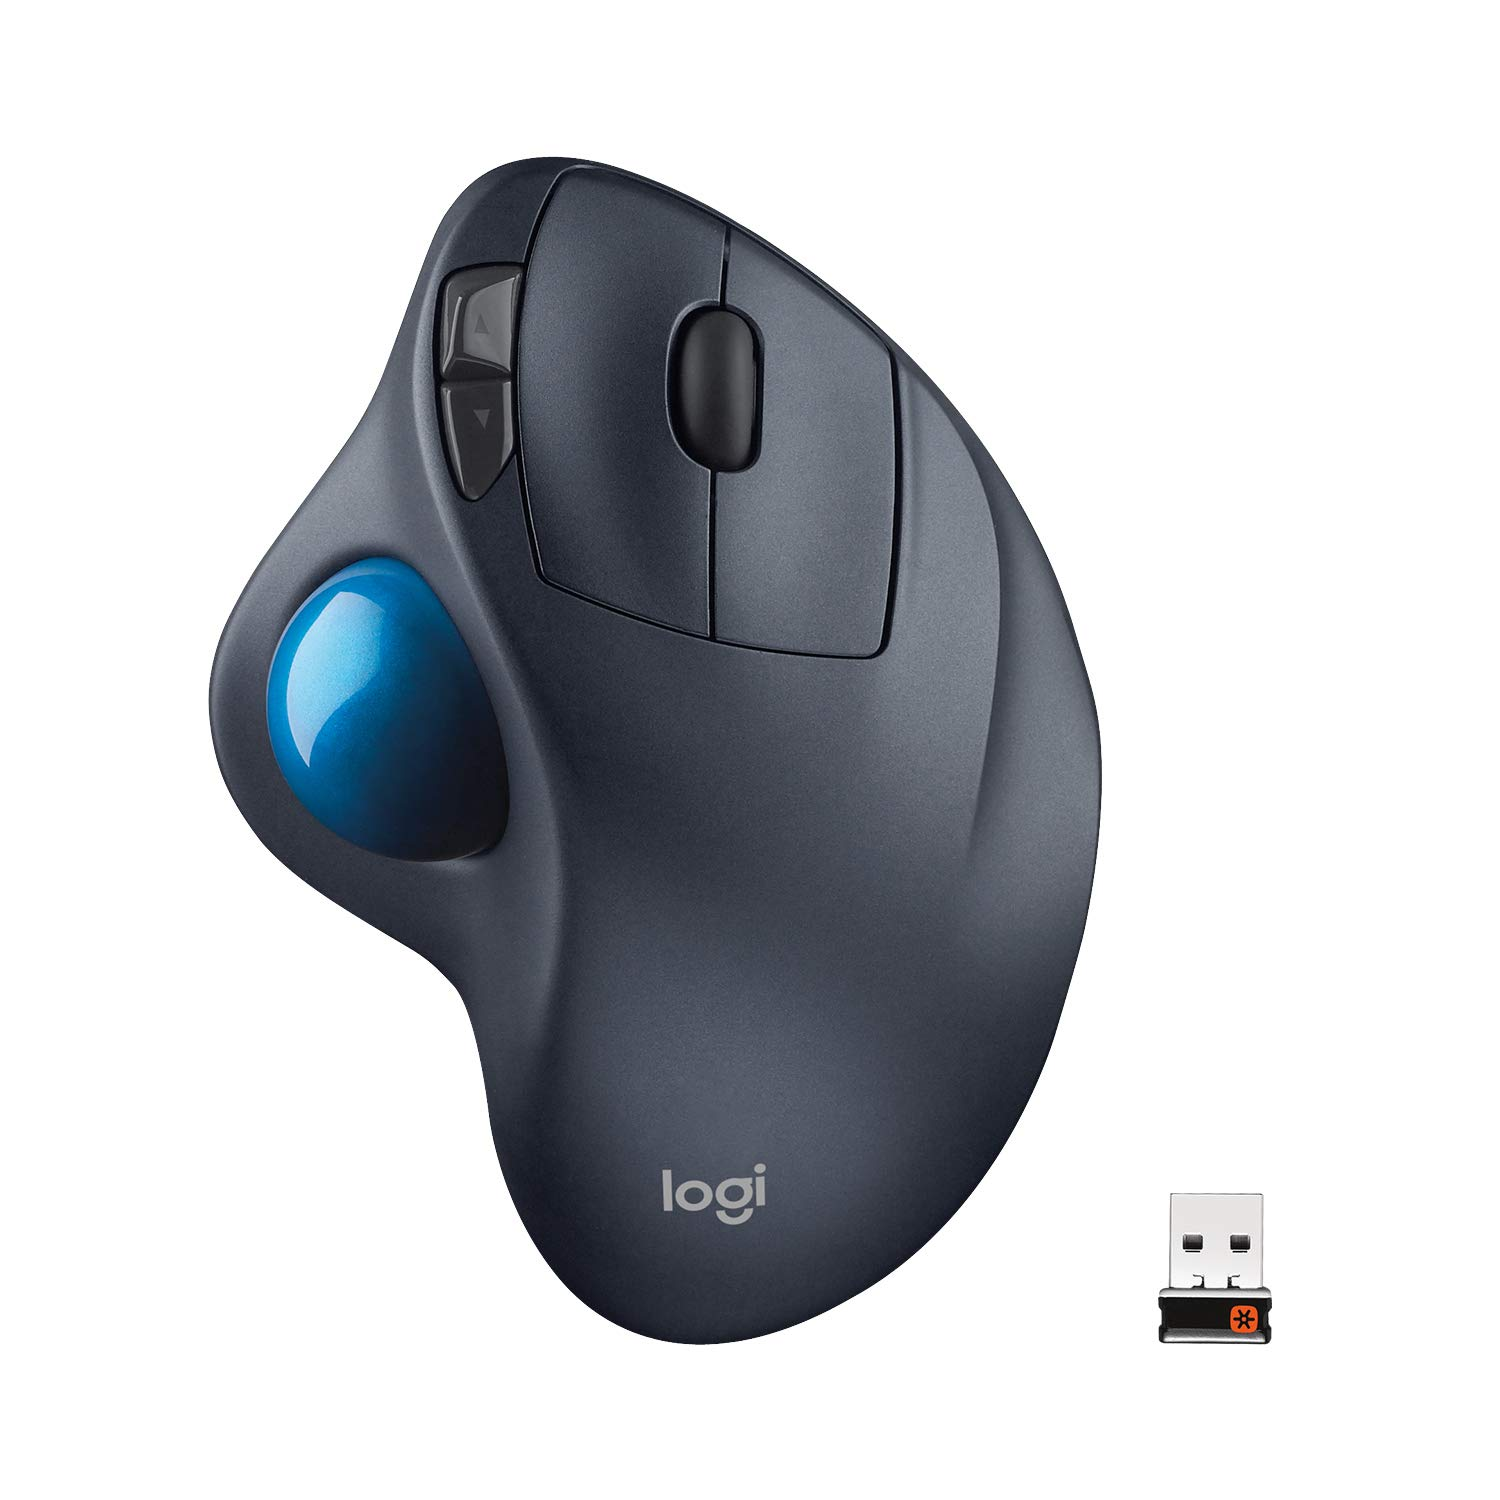 Logitech M570 Wireless Trackball Mouse – Ergonomic Design with Sculpted Right-Hand Shape